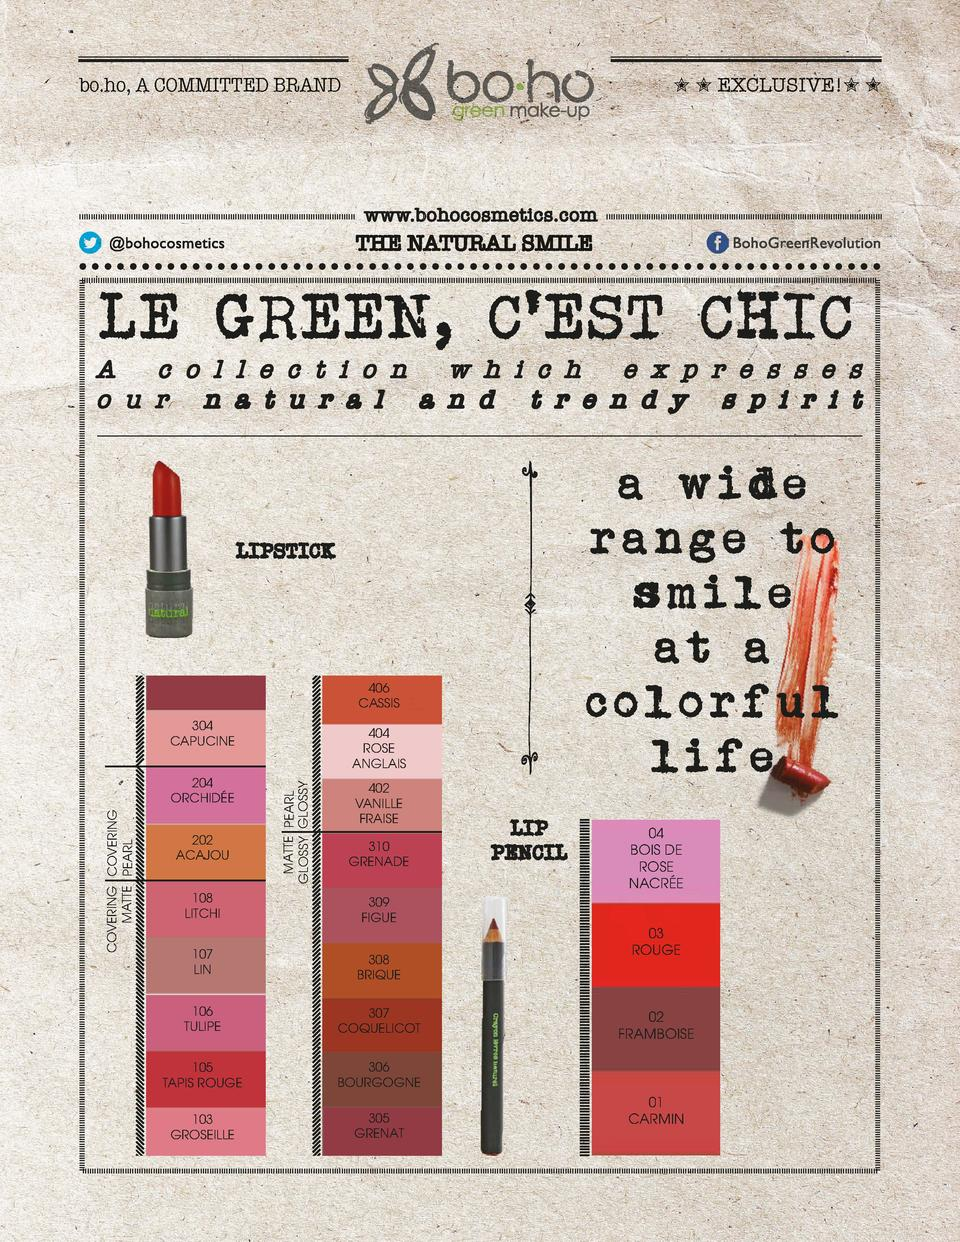 bo.ho, A COMMITTED BRAND          EXCLUSIVE          www.bohocosmetics.com  THE NATURAL SMILE  LE GREEN, C EST CHIC  A c o...